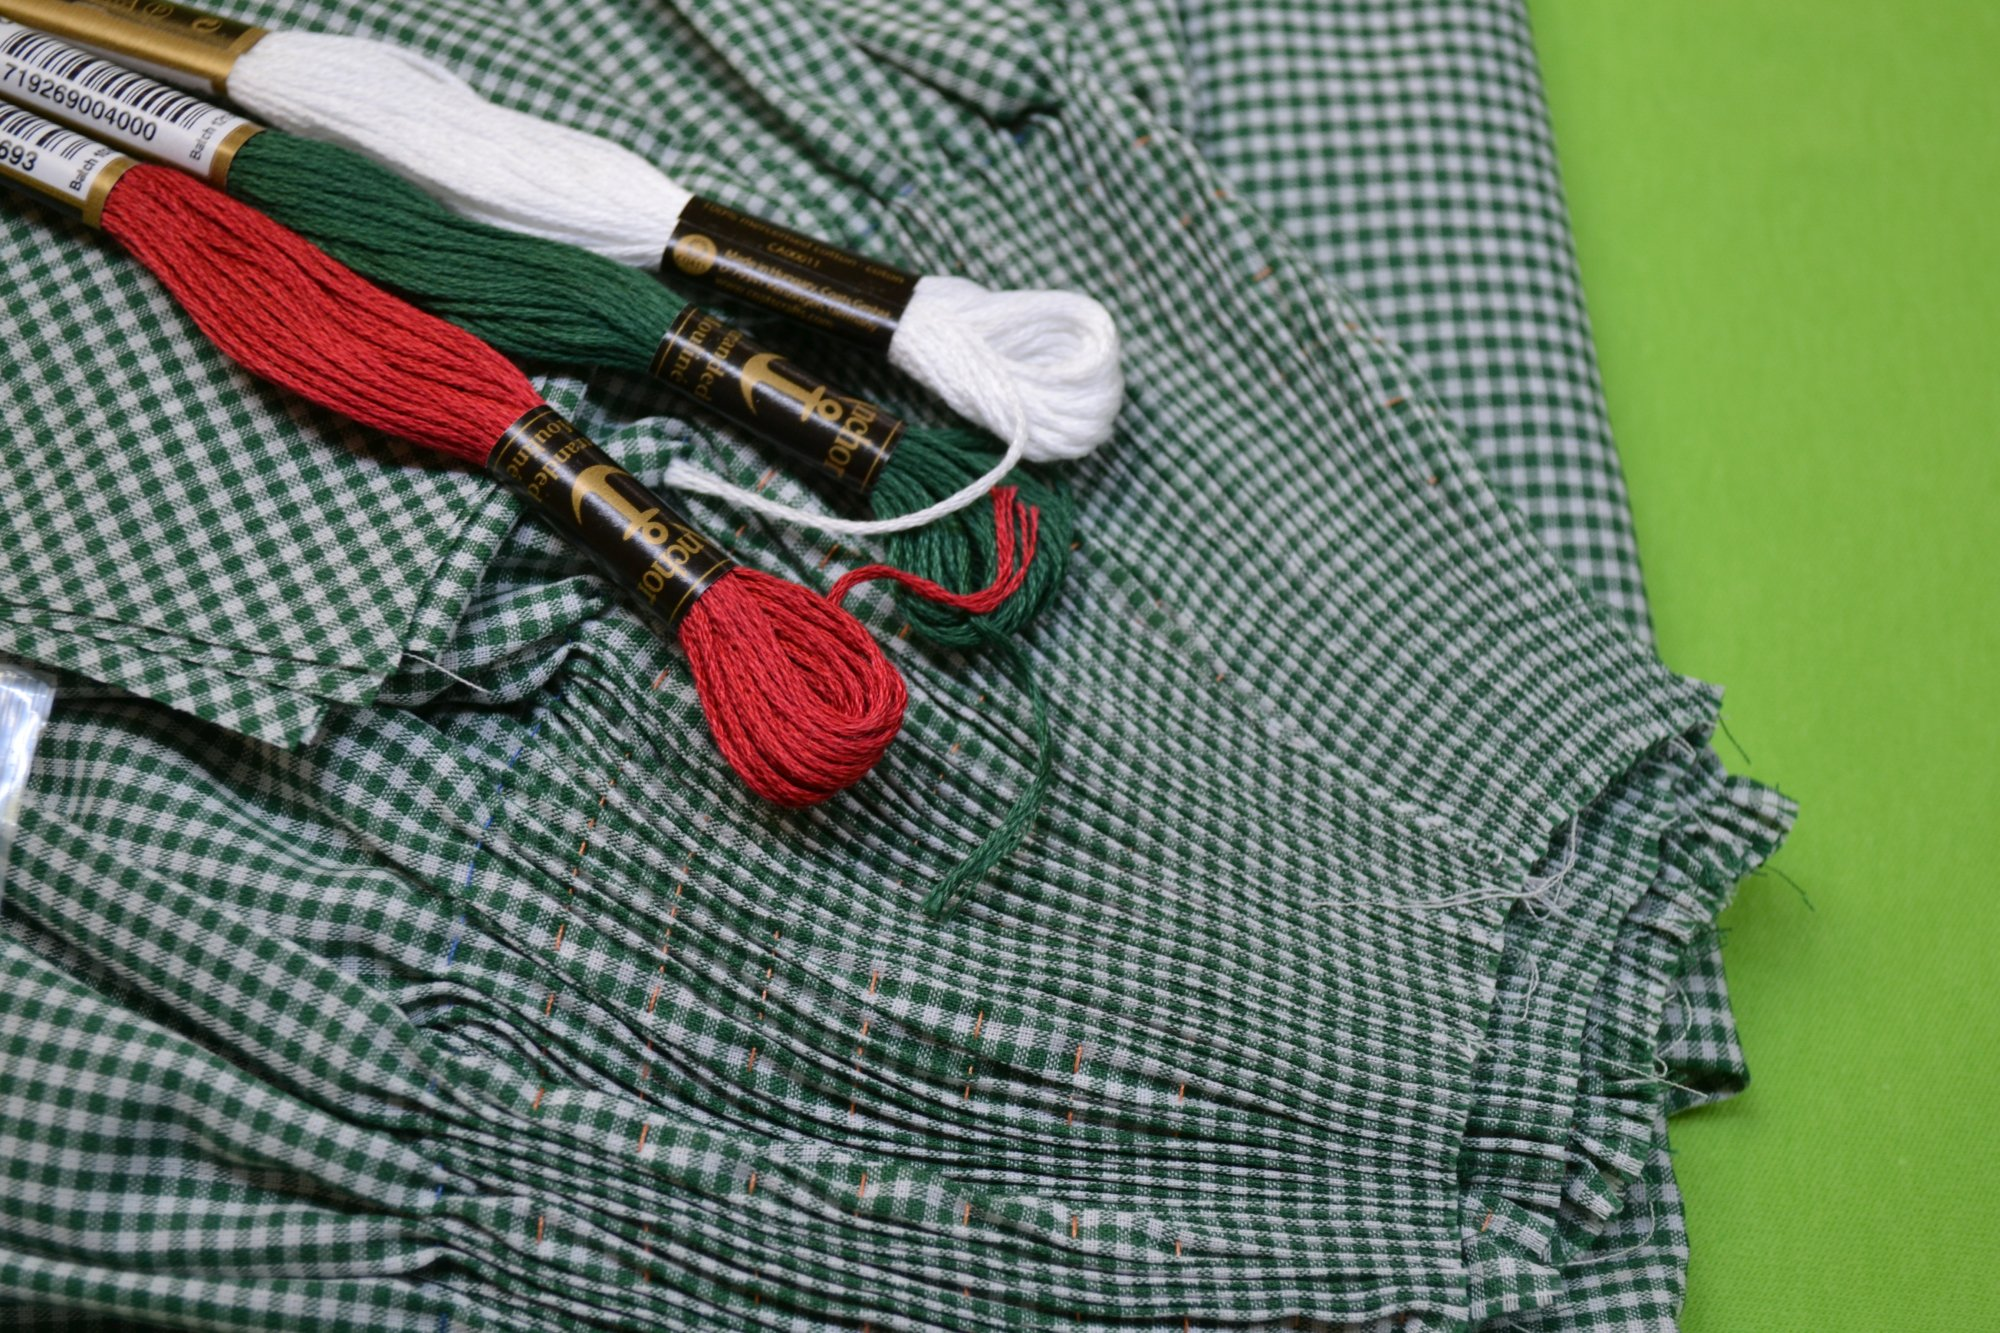 Bishop Kit - Banded Sleeve Green Gingham 2 years